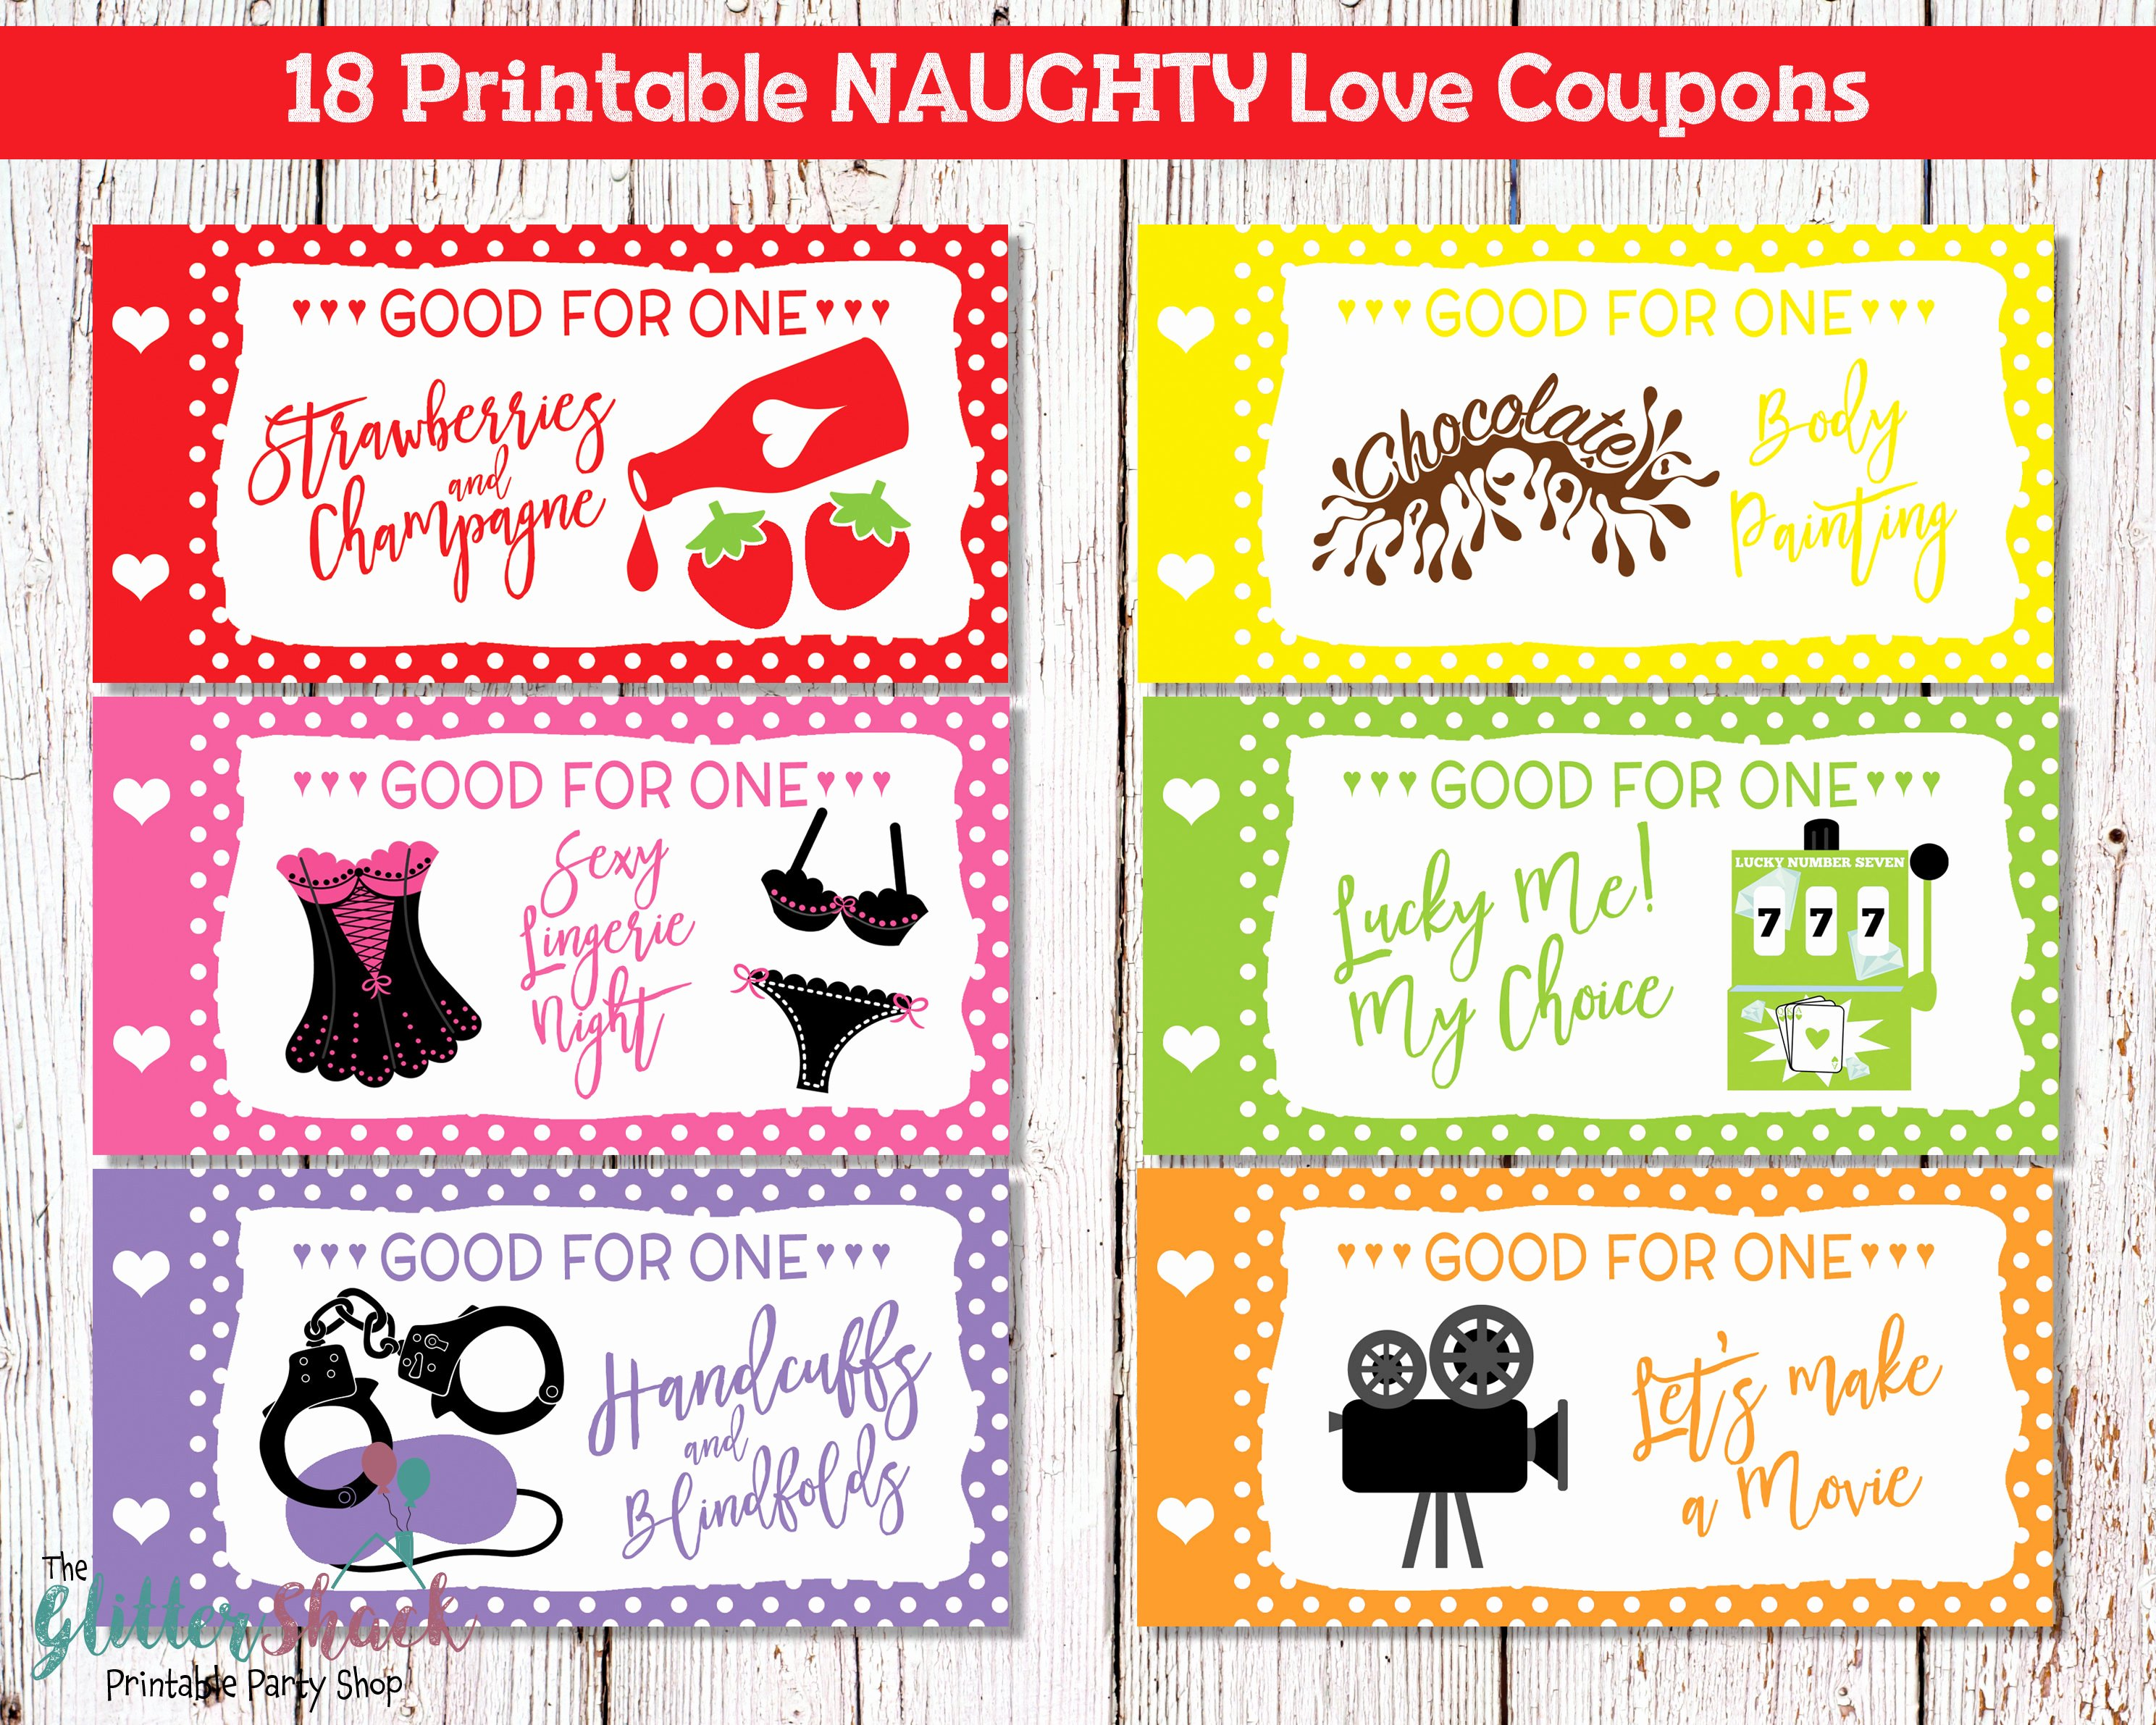 Free Love Coupons for Him Awesome Printable Naughty Love Coupons for Men Husband Boyfriend Y